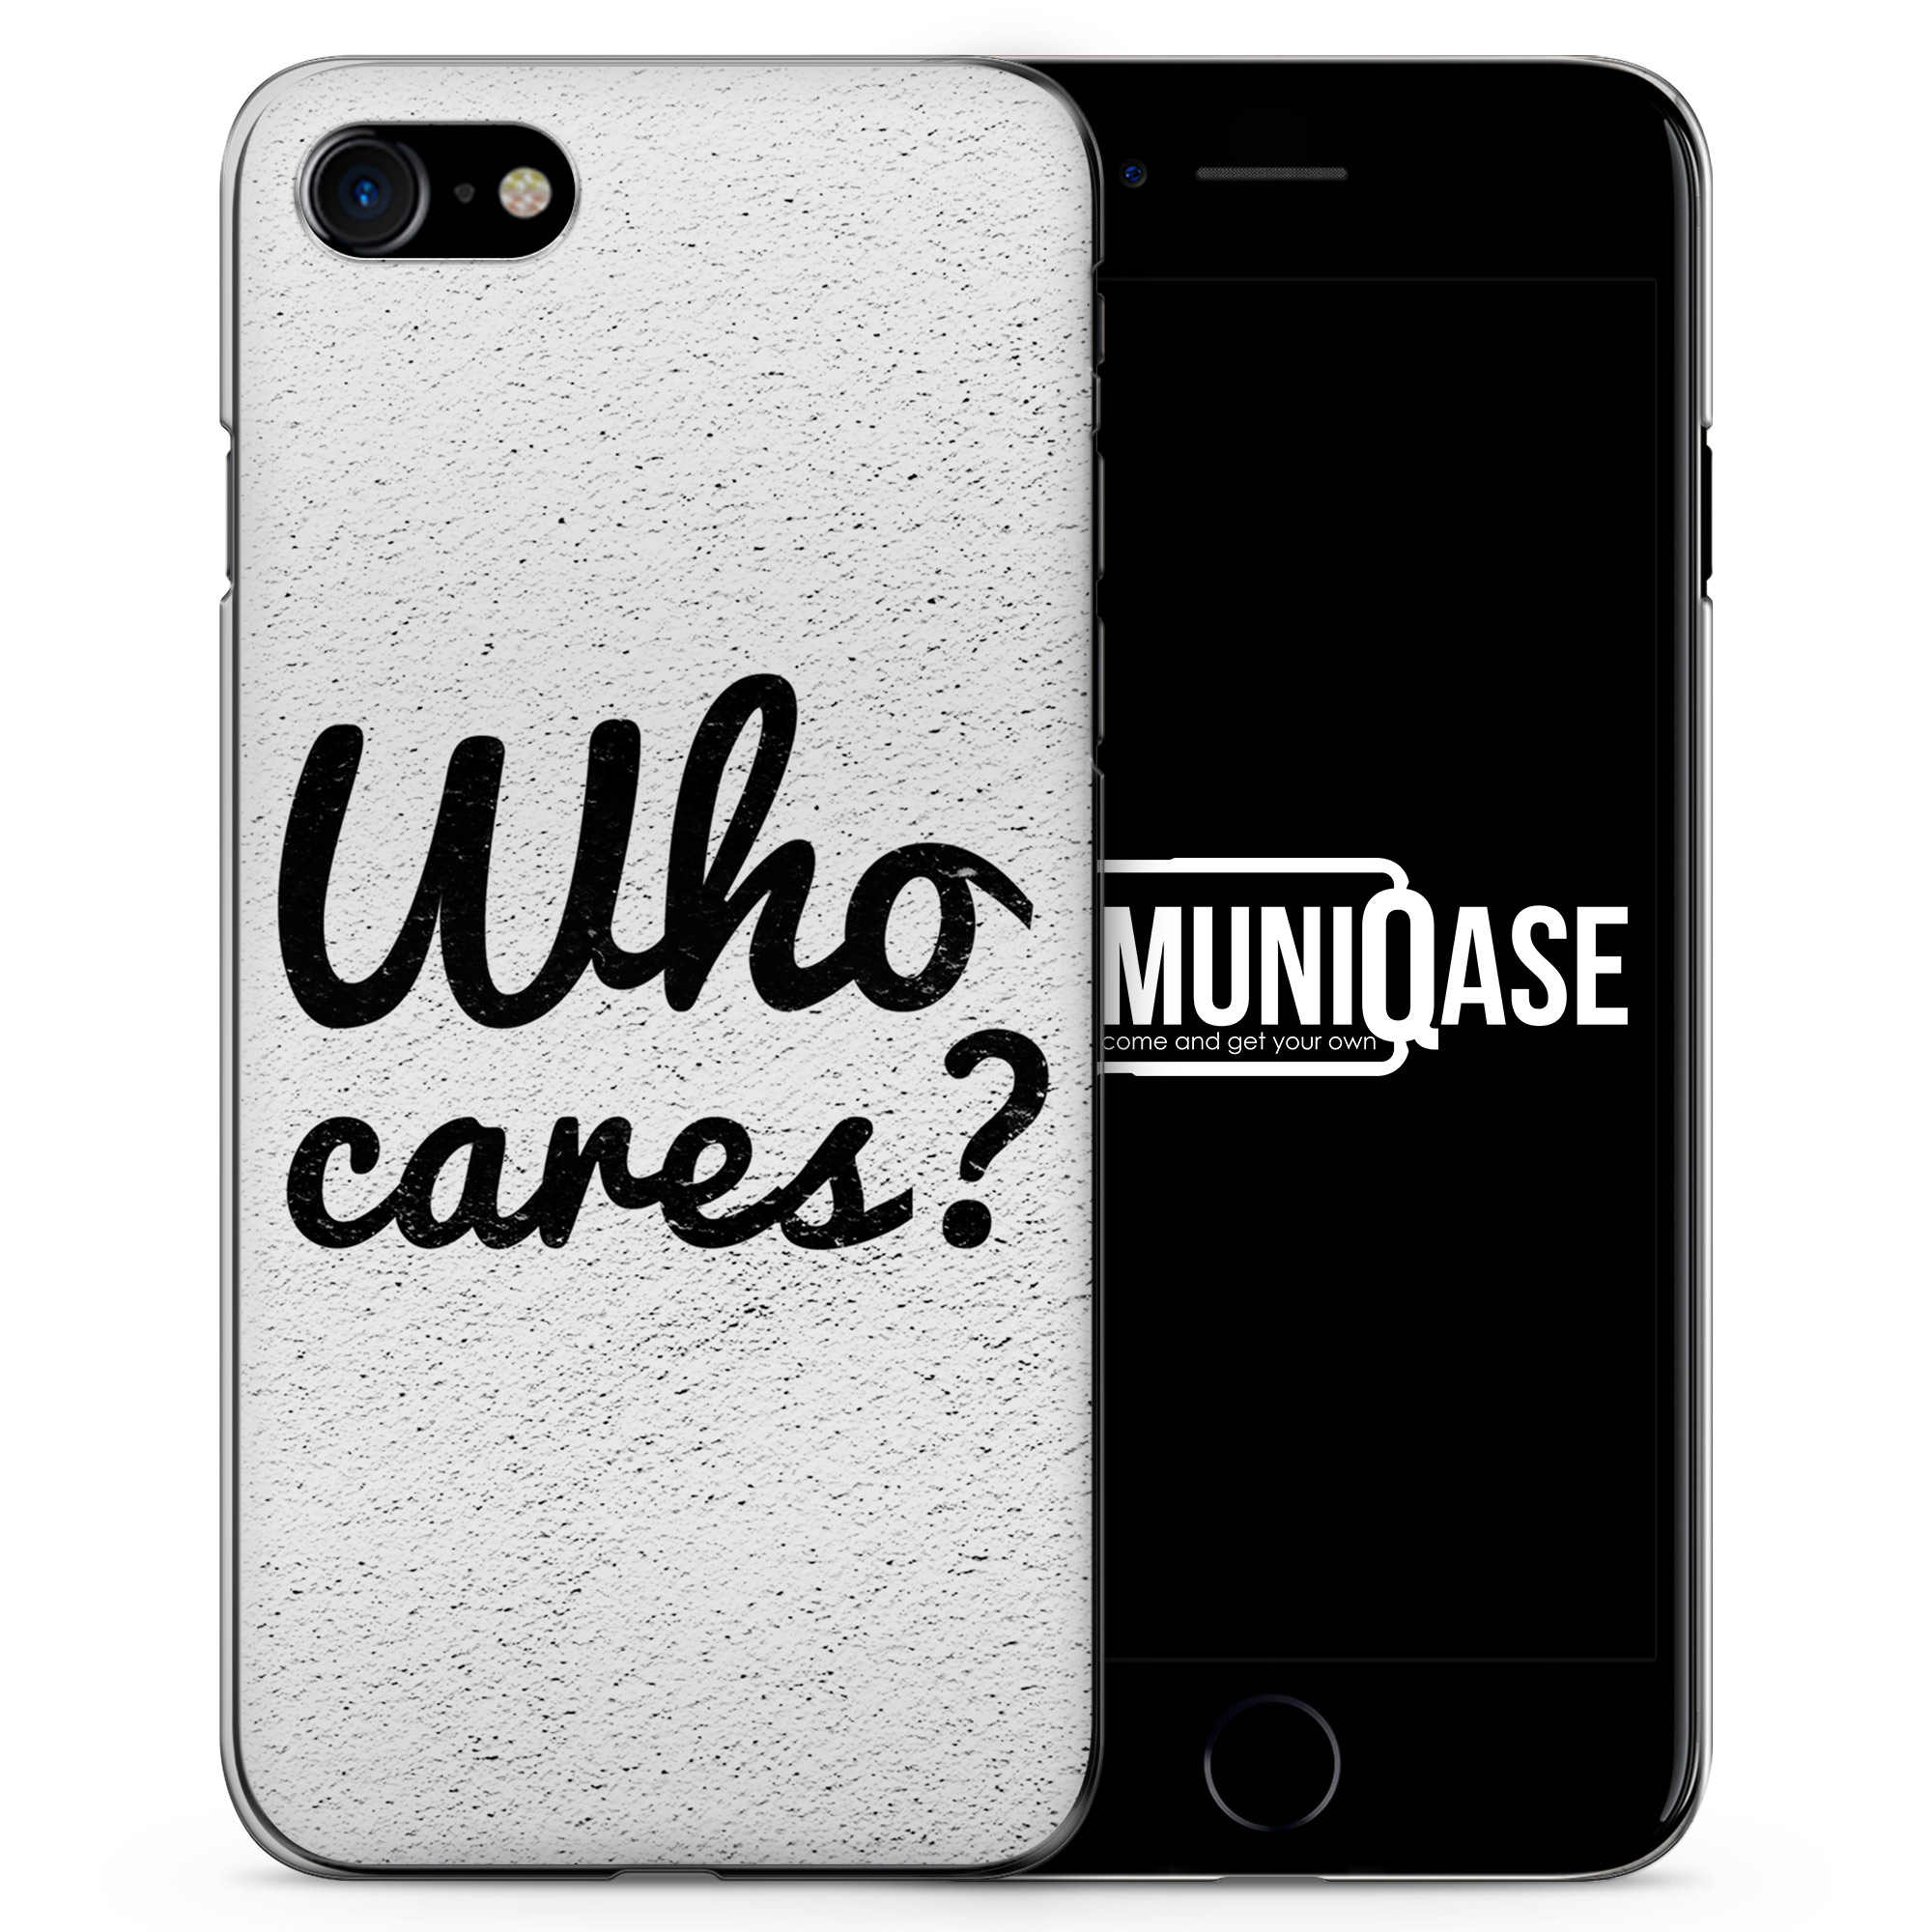 Who cares? - Slim Handyhülle für iPhone 7